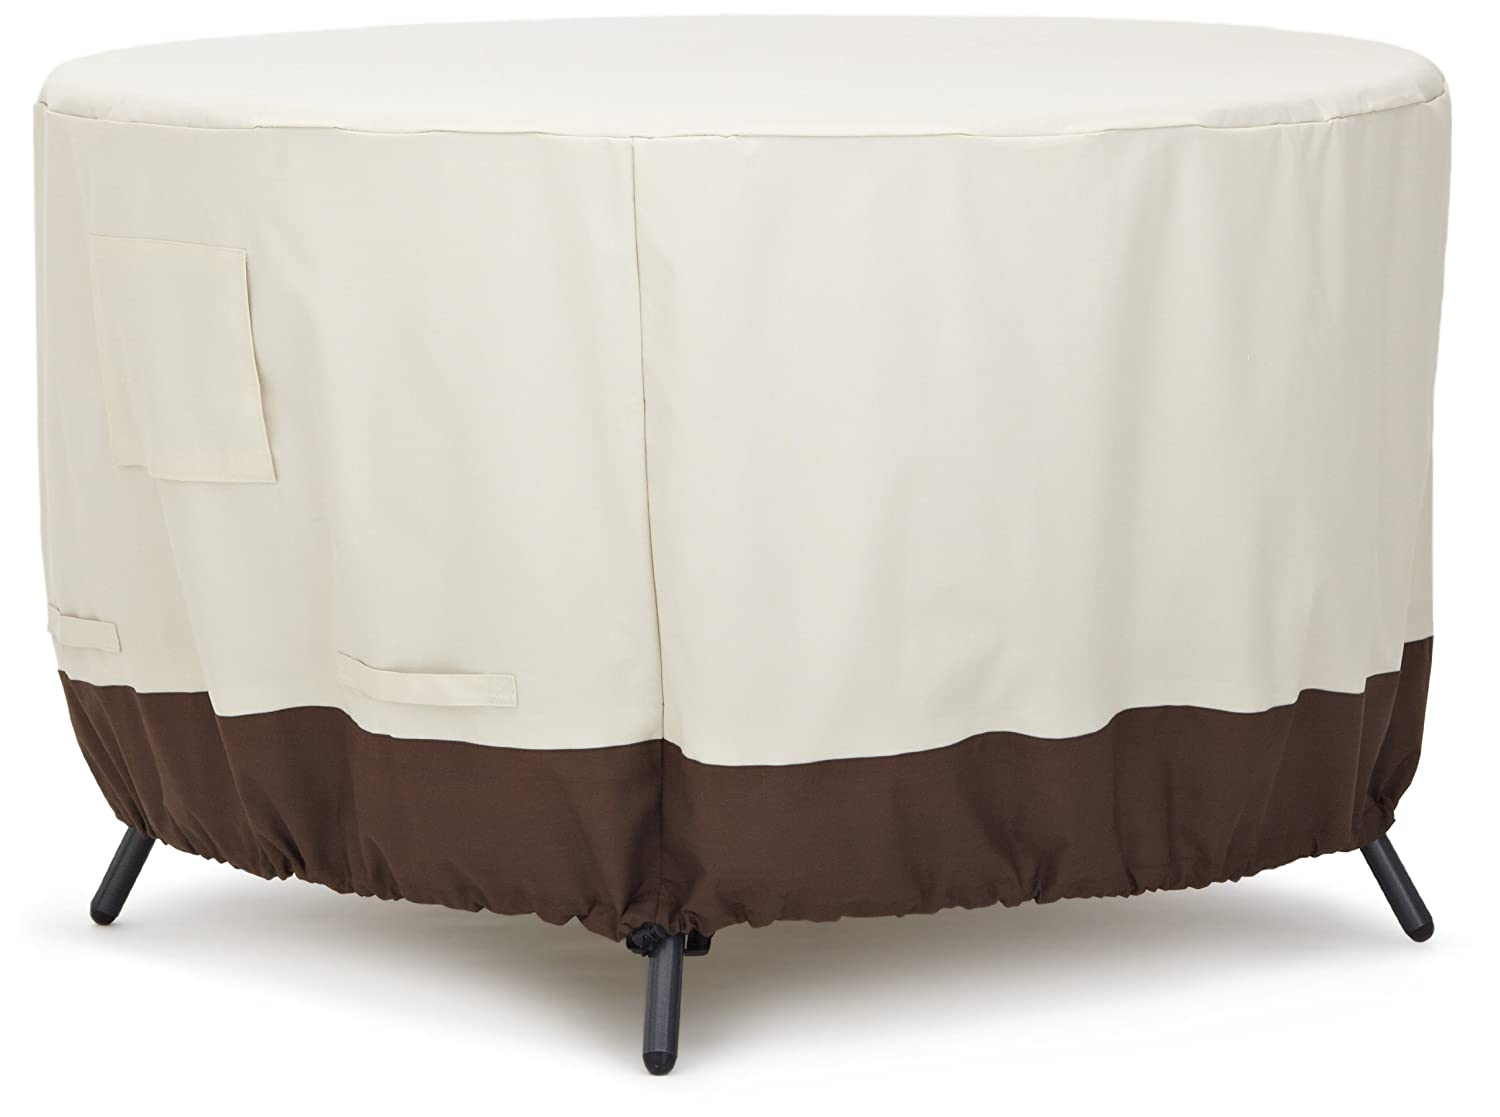 AmazonBasics Round Dining Table Patio Cover - 48-Inch